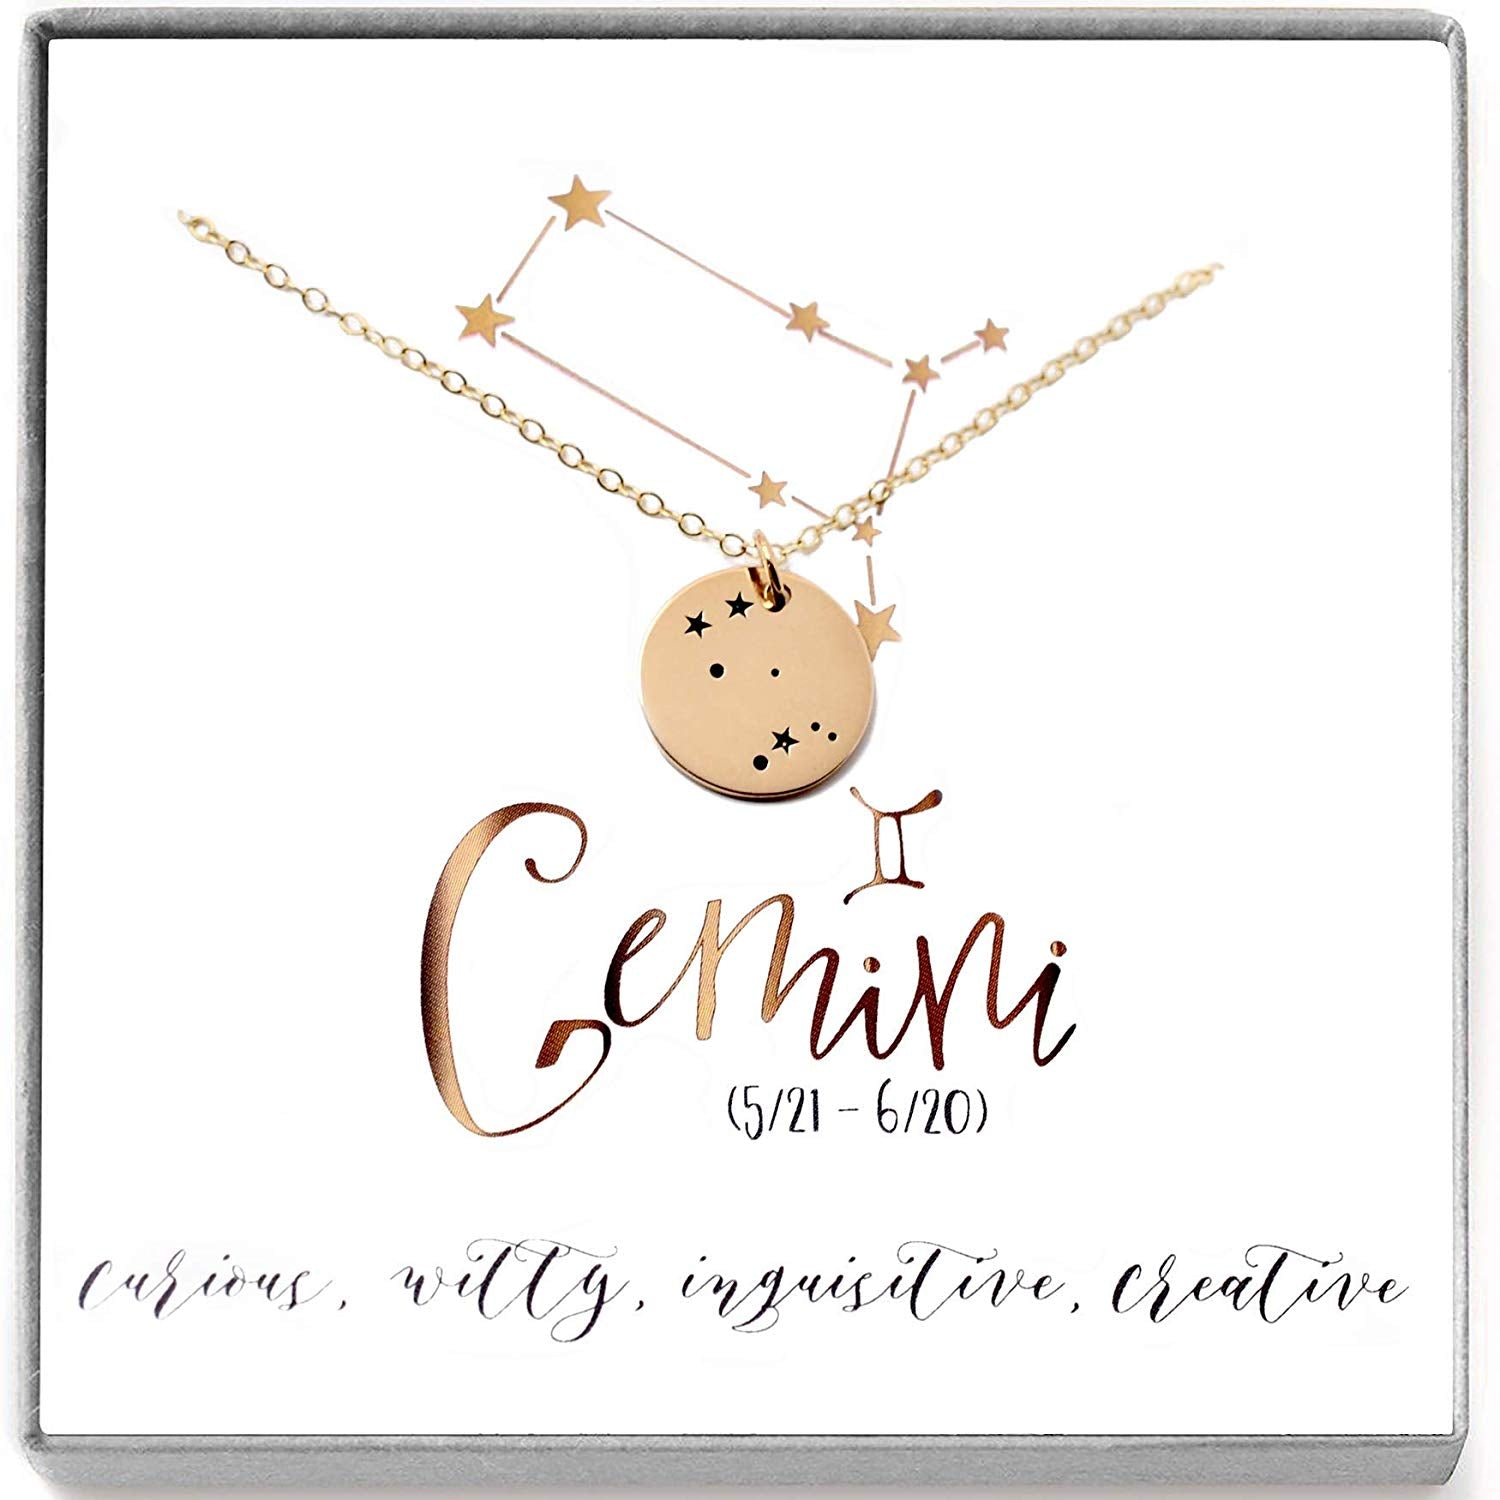 Gemini Zodiac Sign 14K Gold Filled Constellation Necklace - Love It Personalized